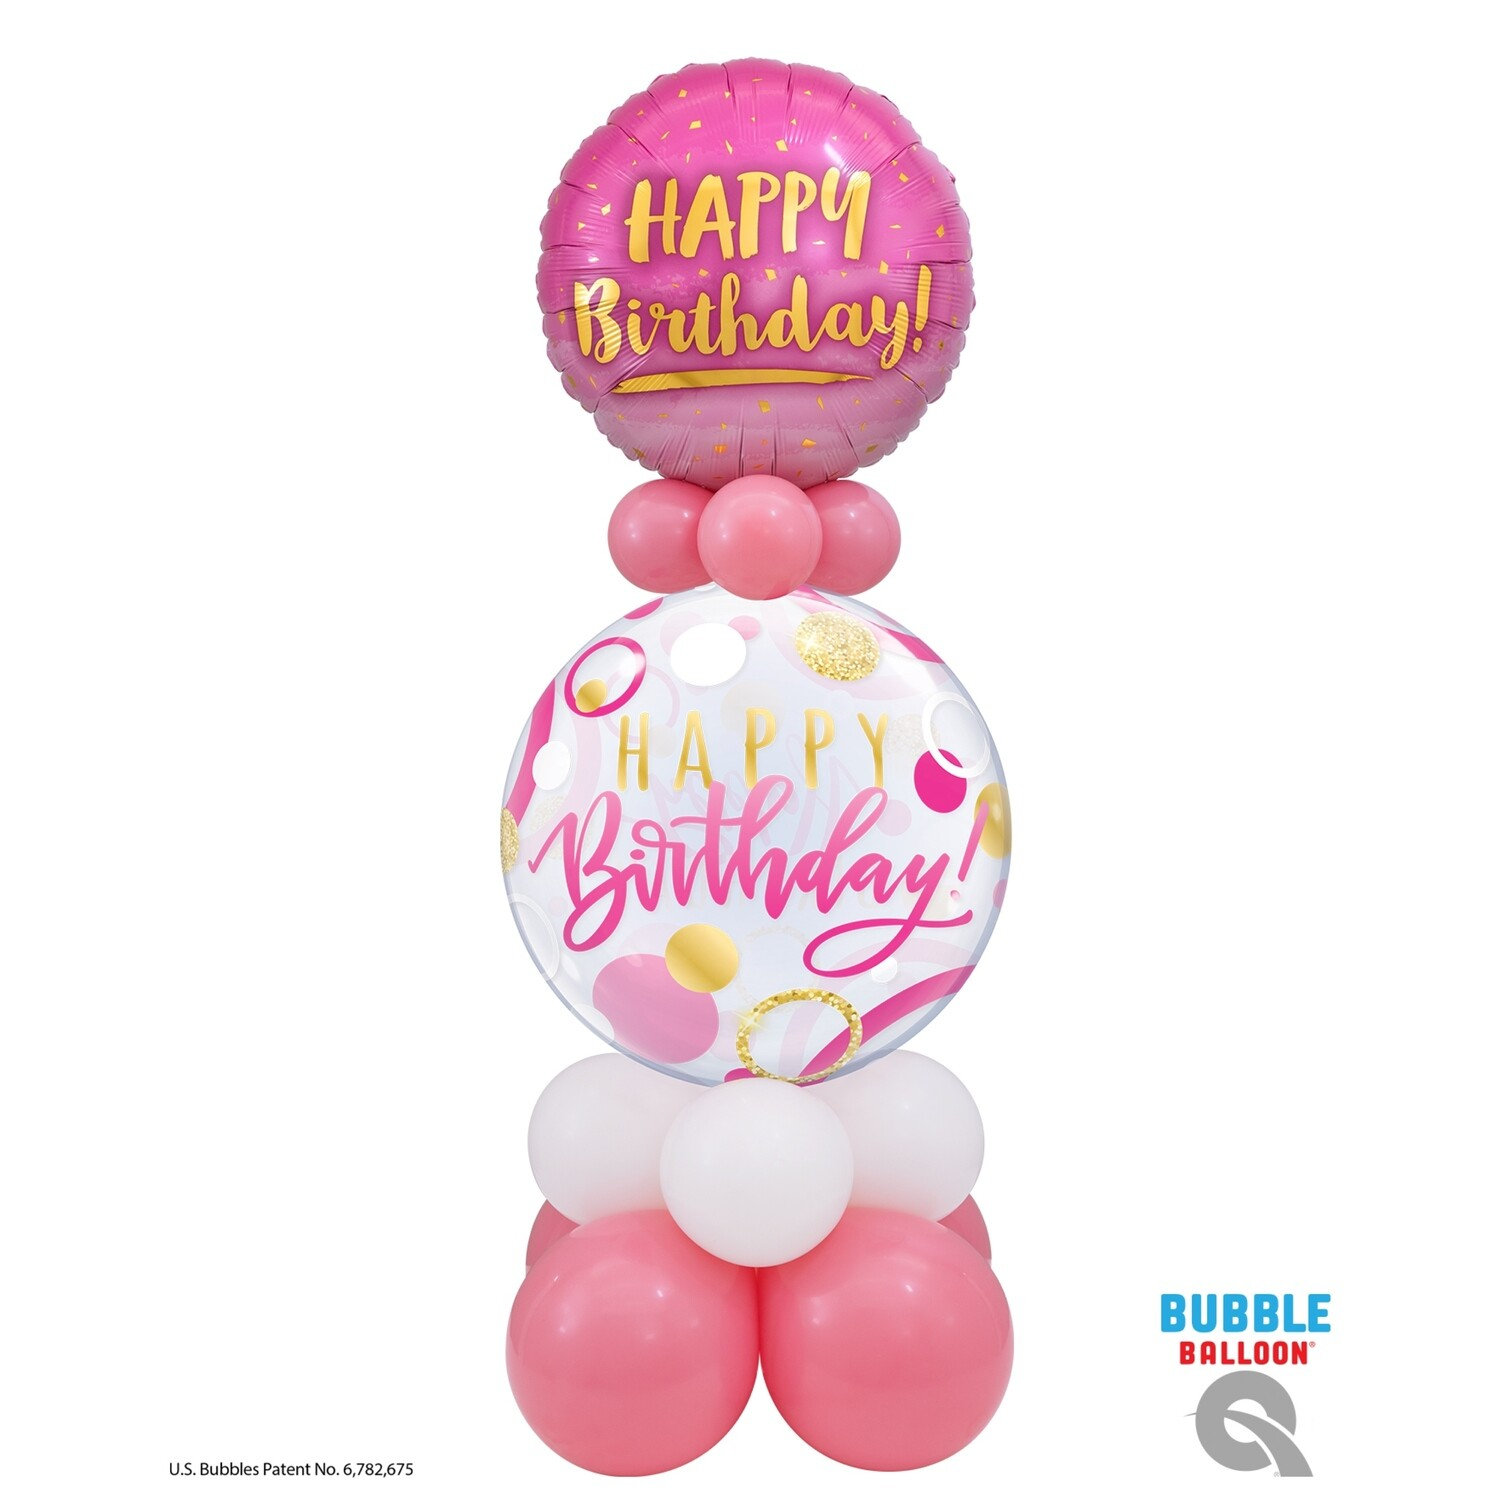 Happy Birthday Pink & Gold Balloon Bouquet Designs